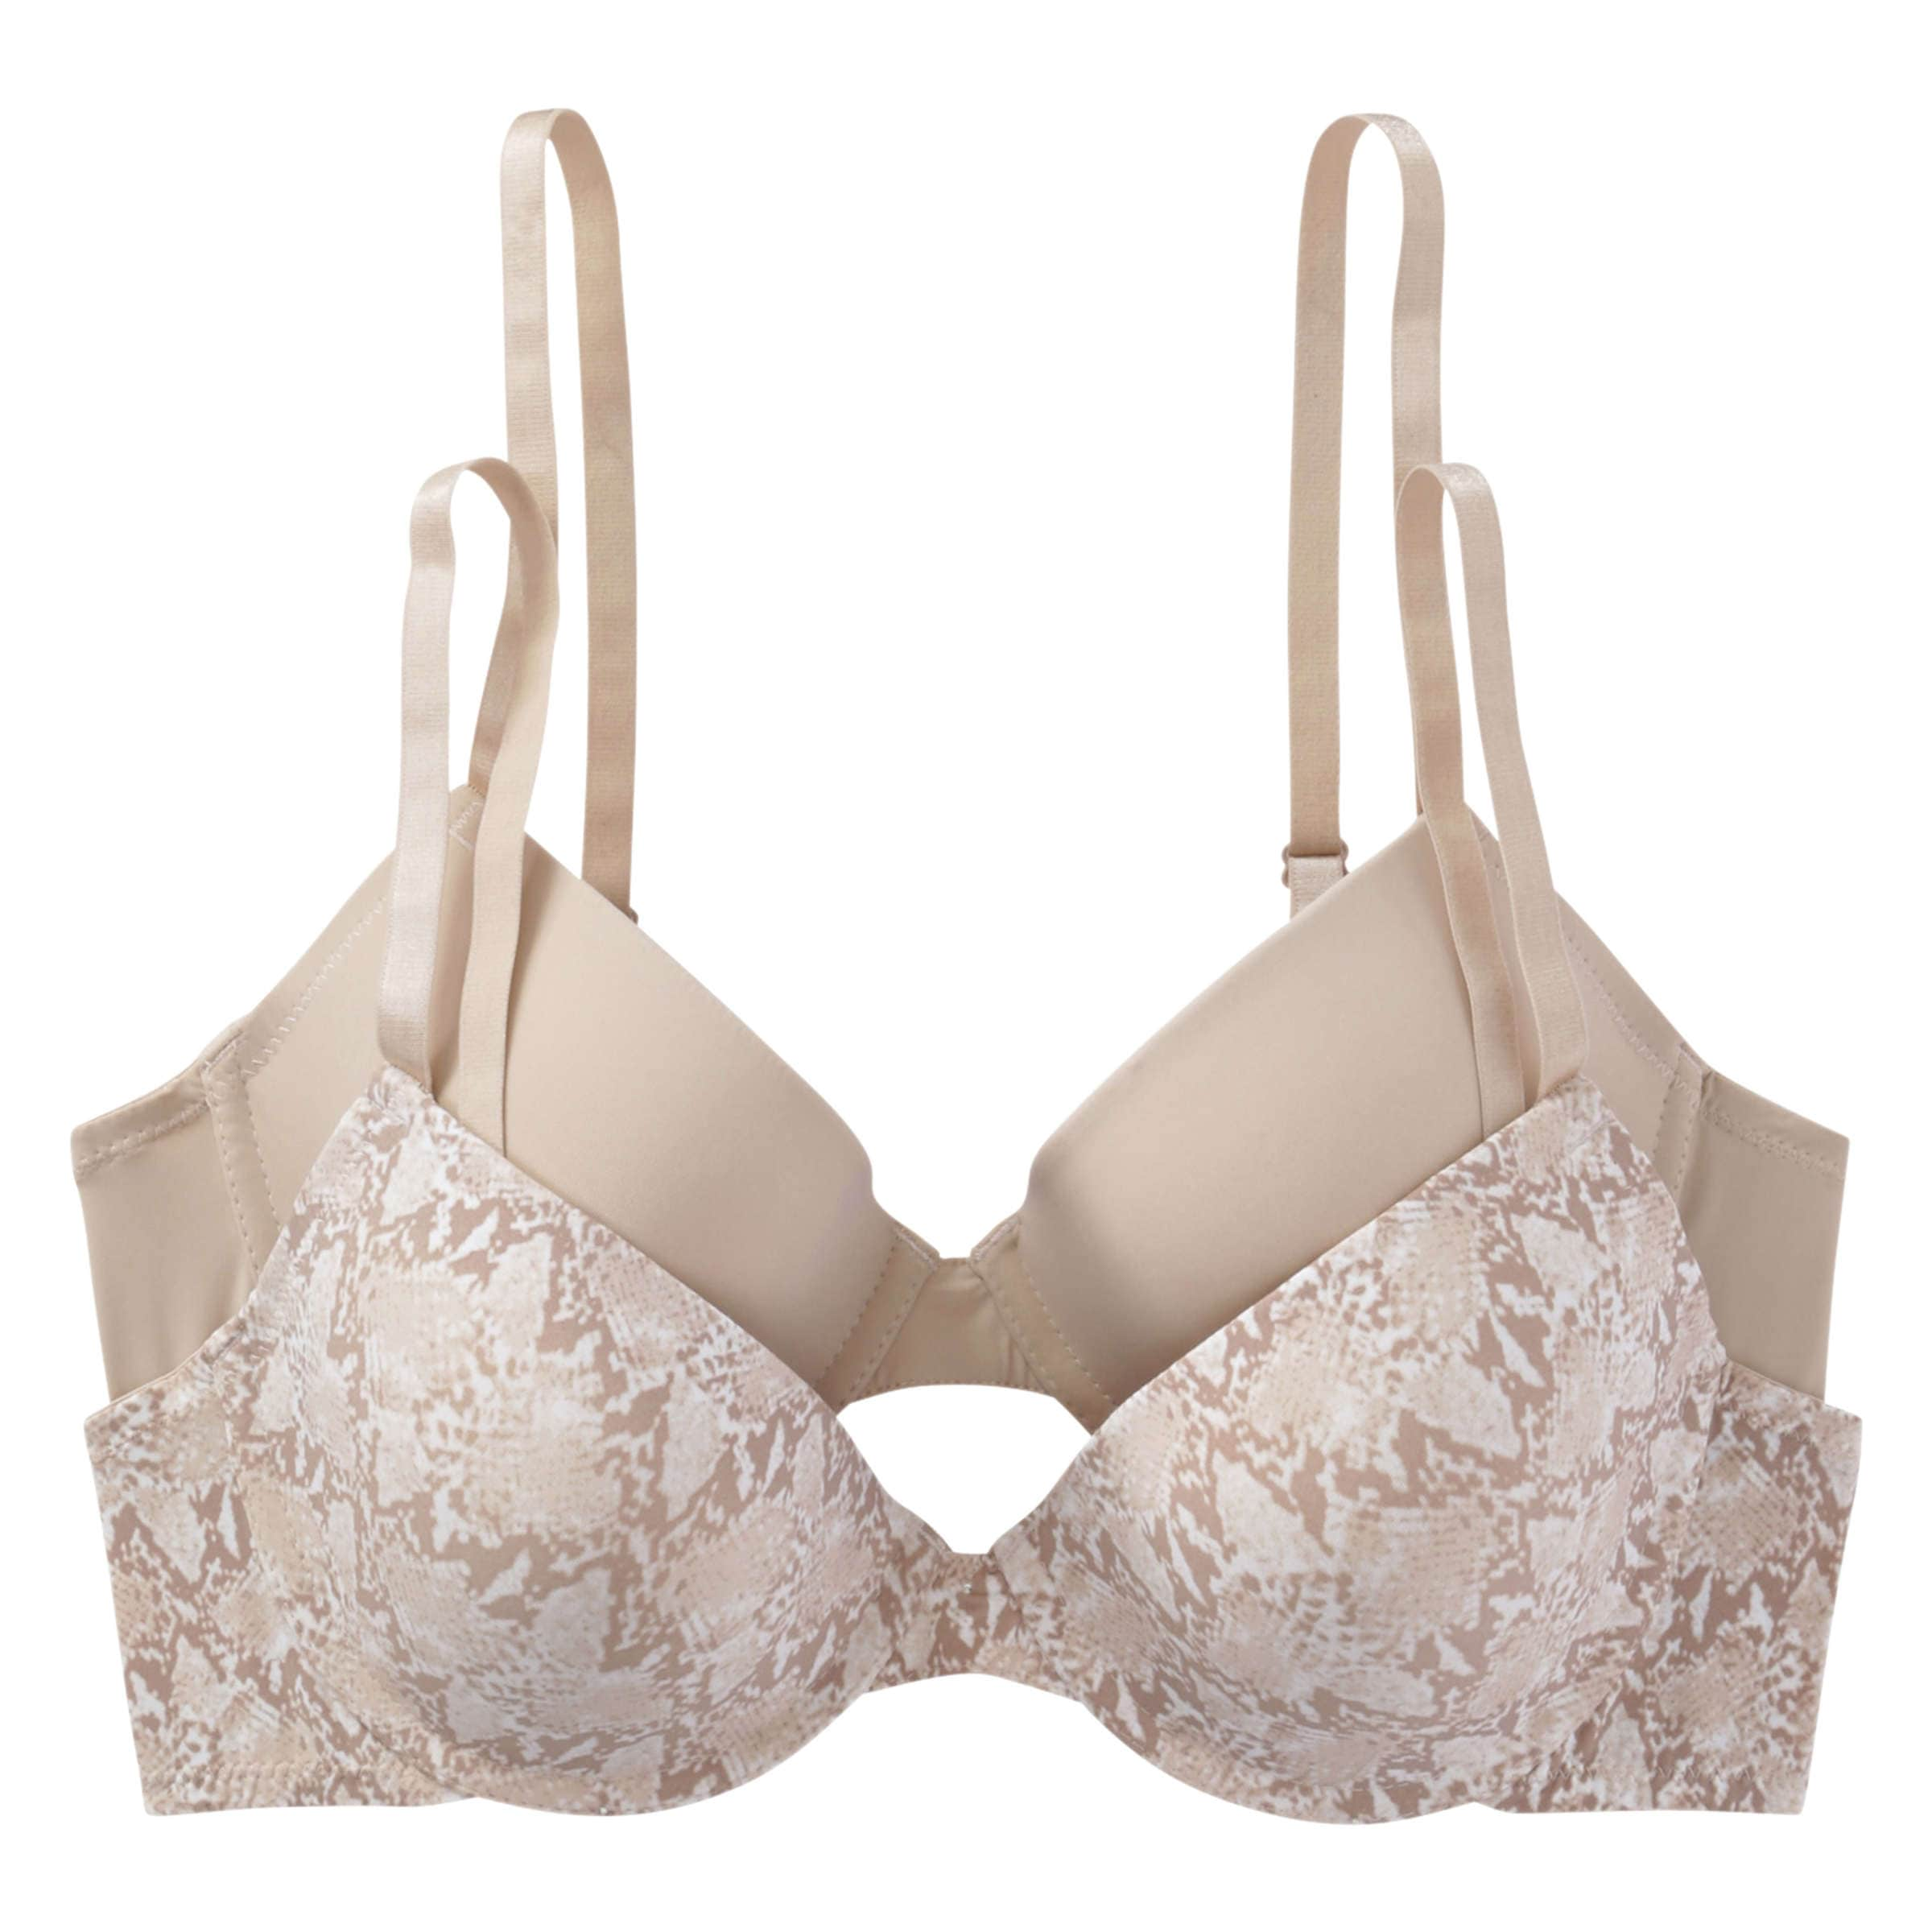 b878a58c20 2 Pack Underwire T-Shirt Bras in Print 1 from Joe Fresh